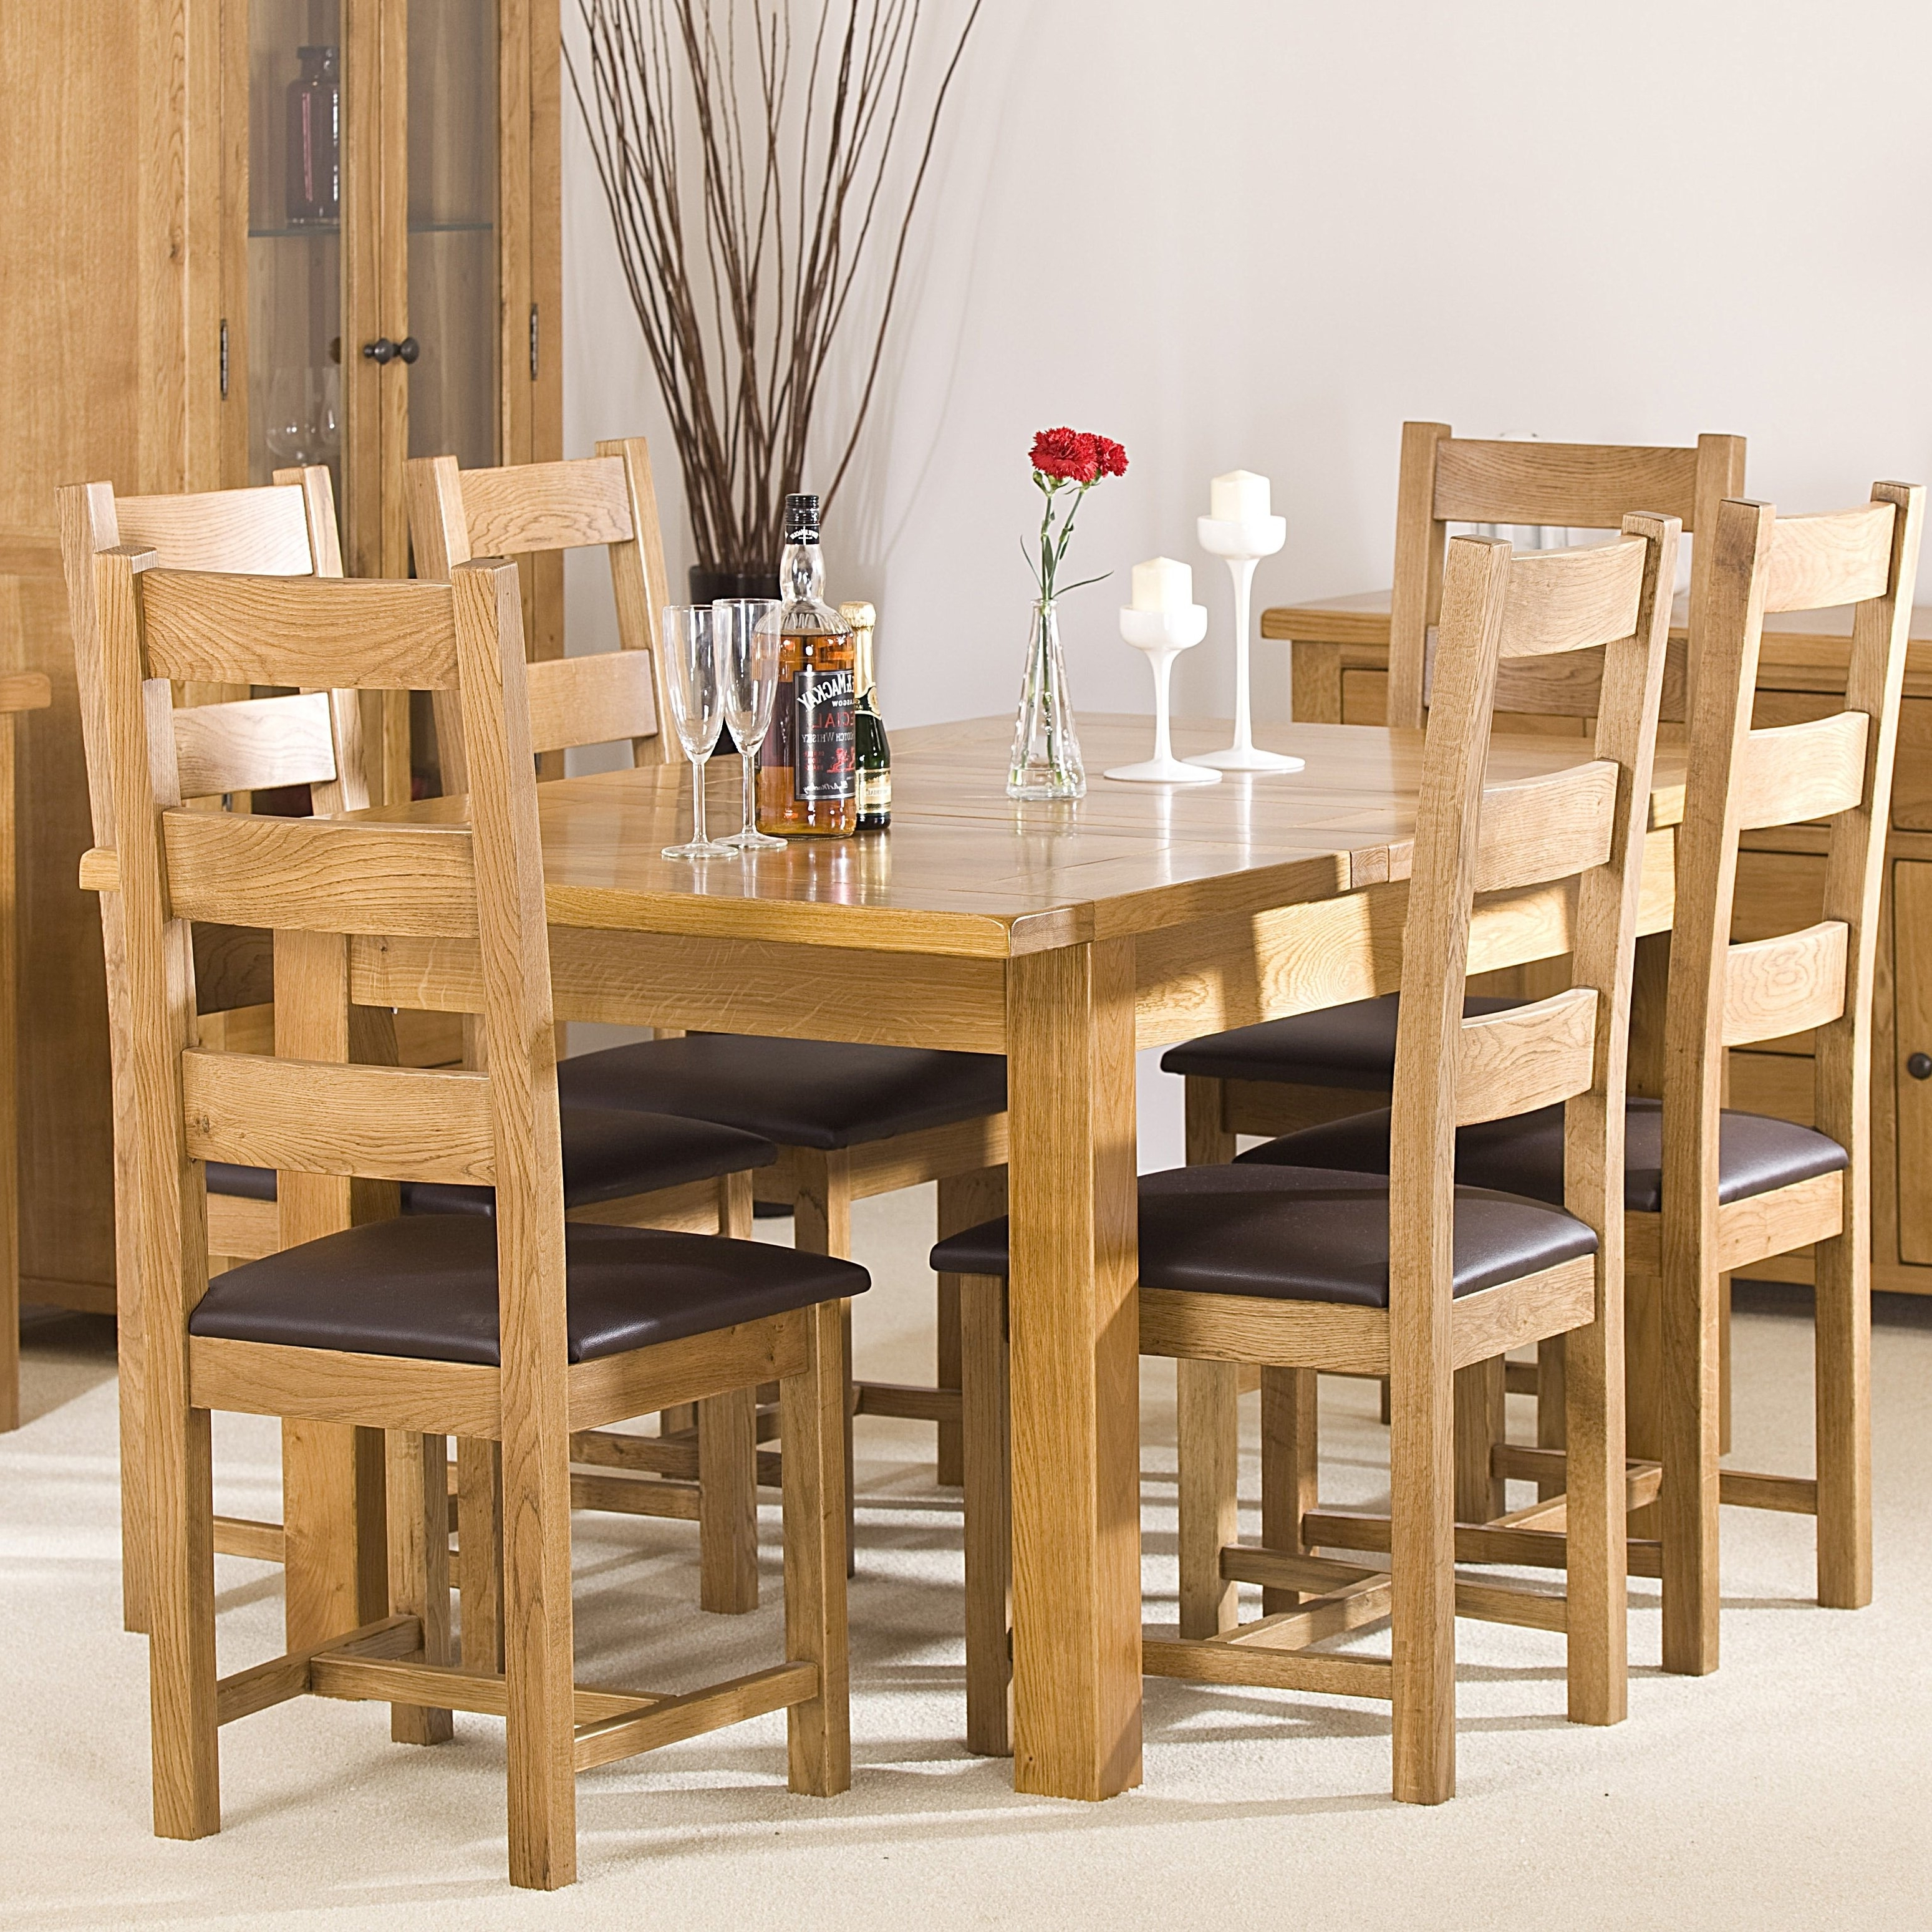 Recent Homestead Living Extendable Dining Table And 6 Chairs (View 24 of 25)